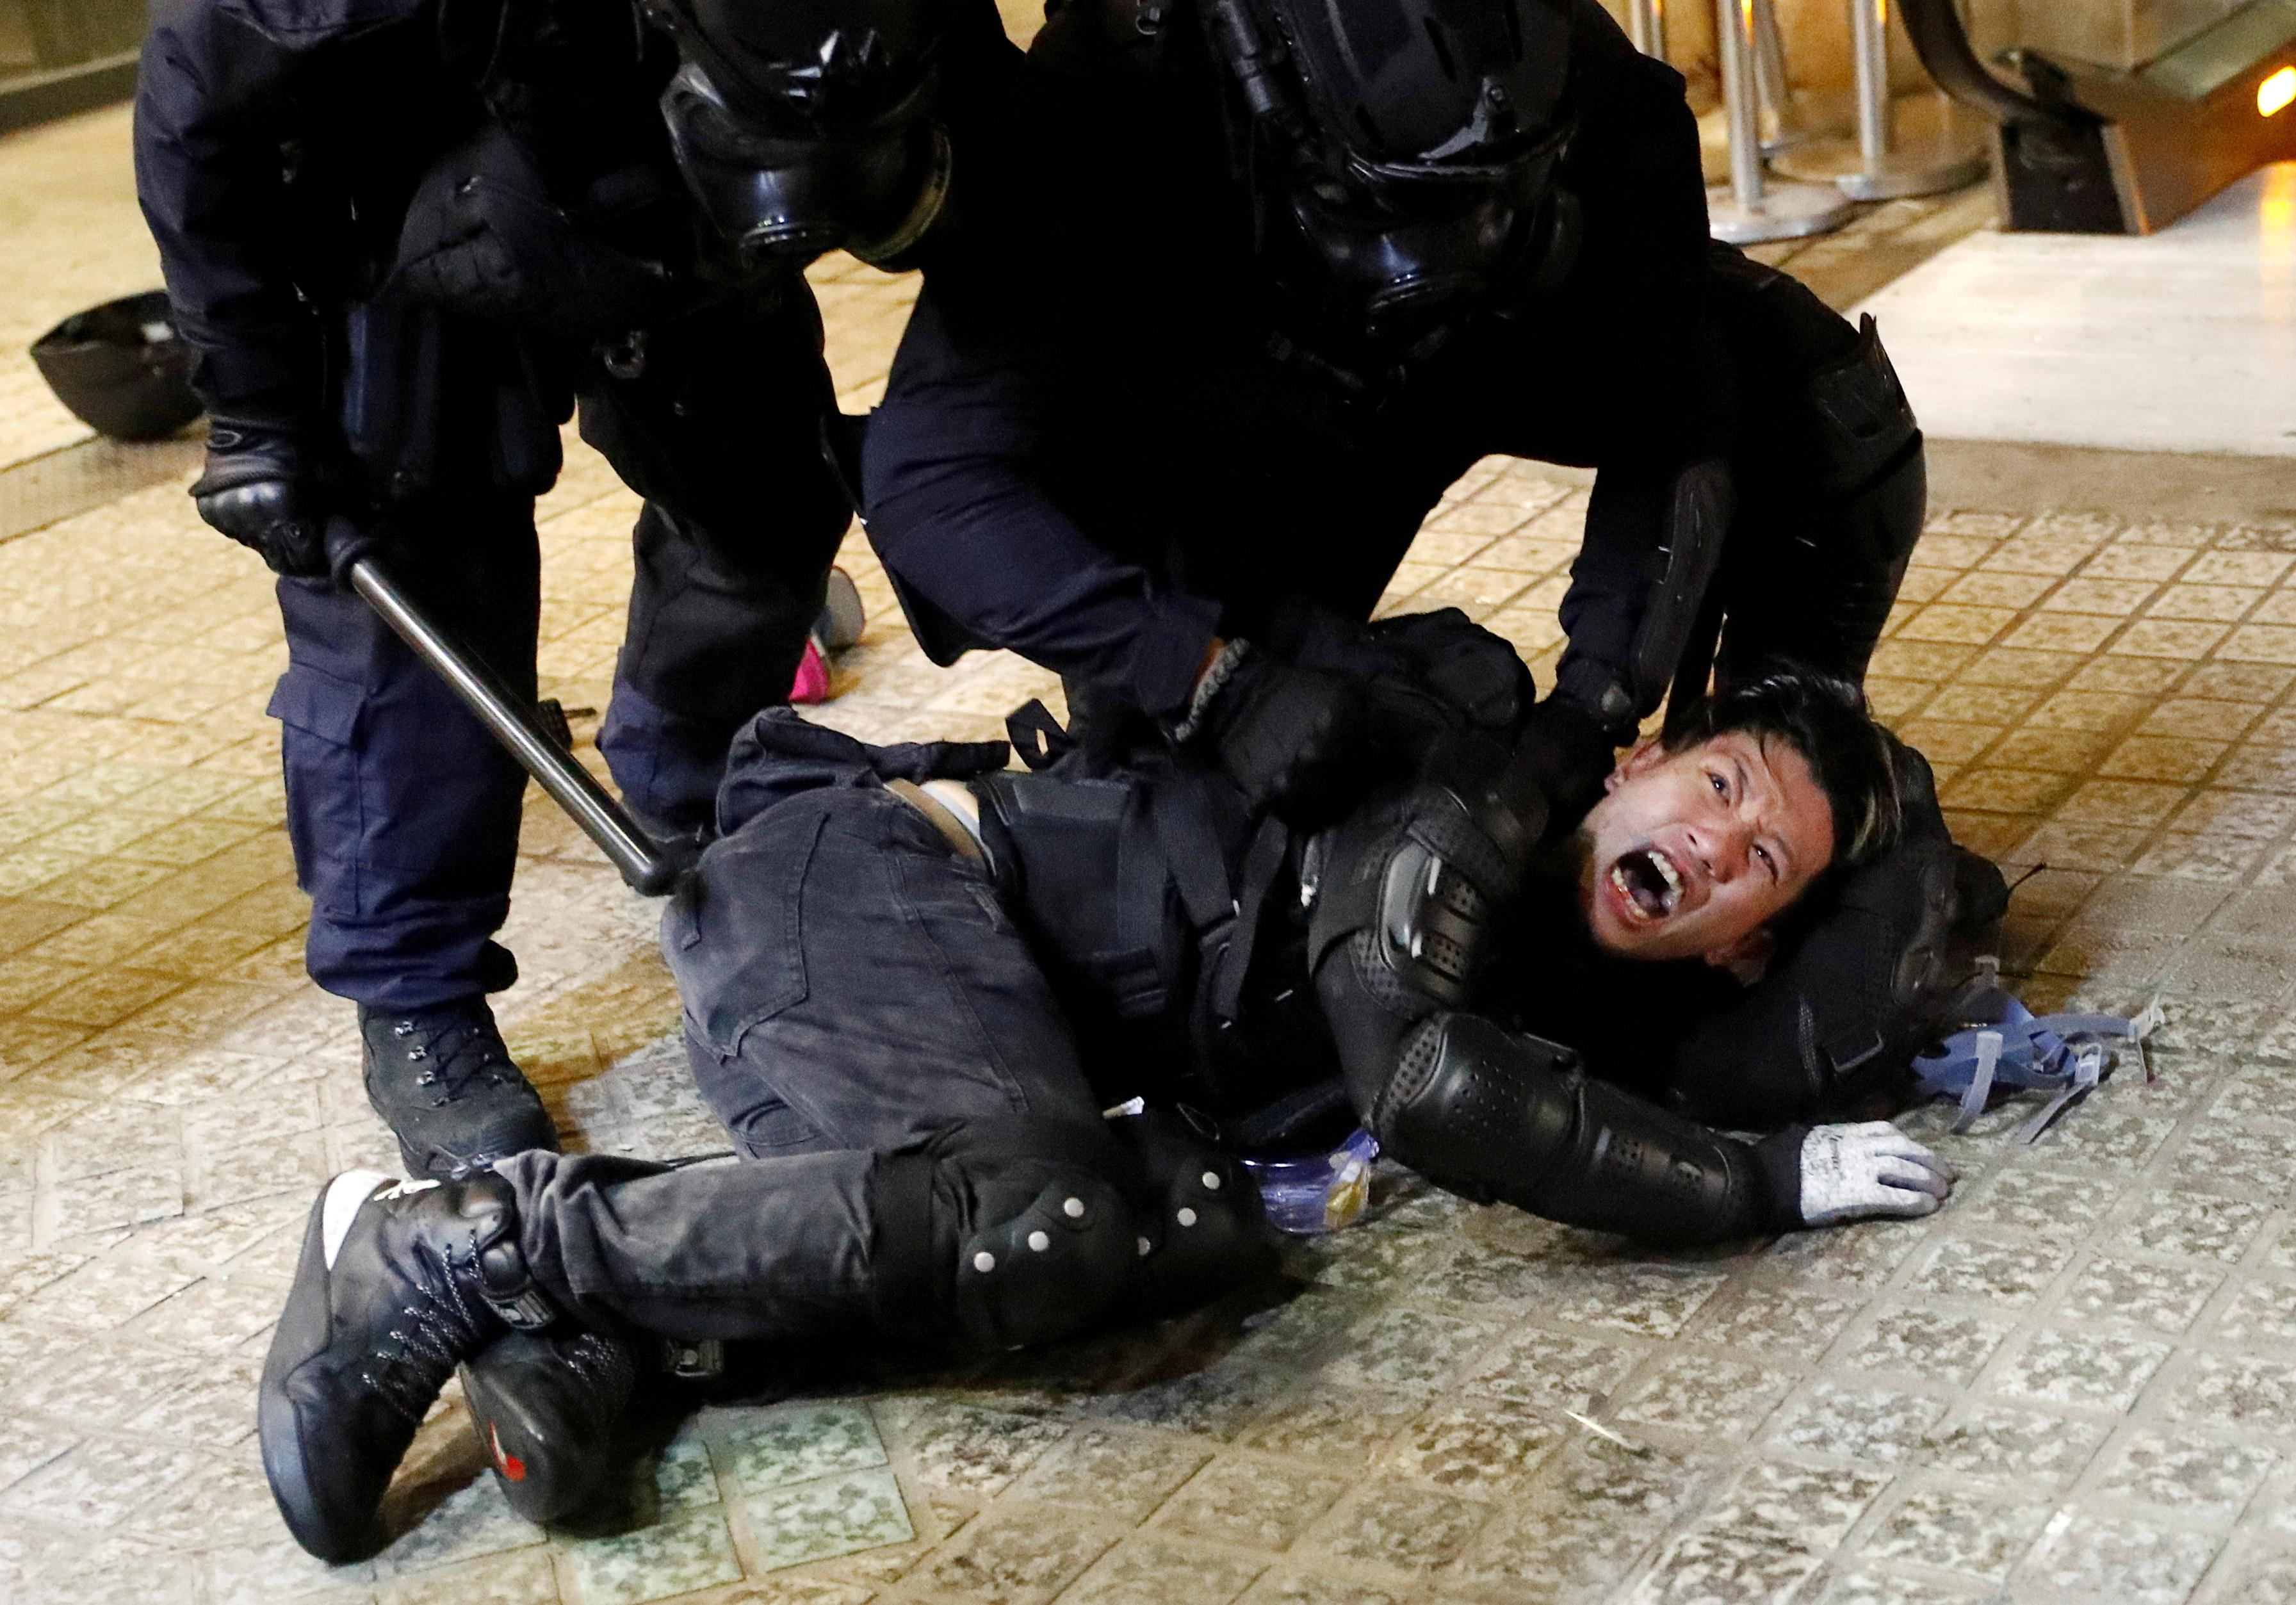 Hong Kong commercial centers paralyzed as protesters, police...